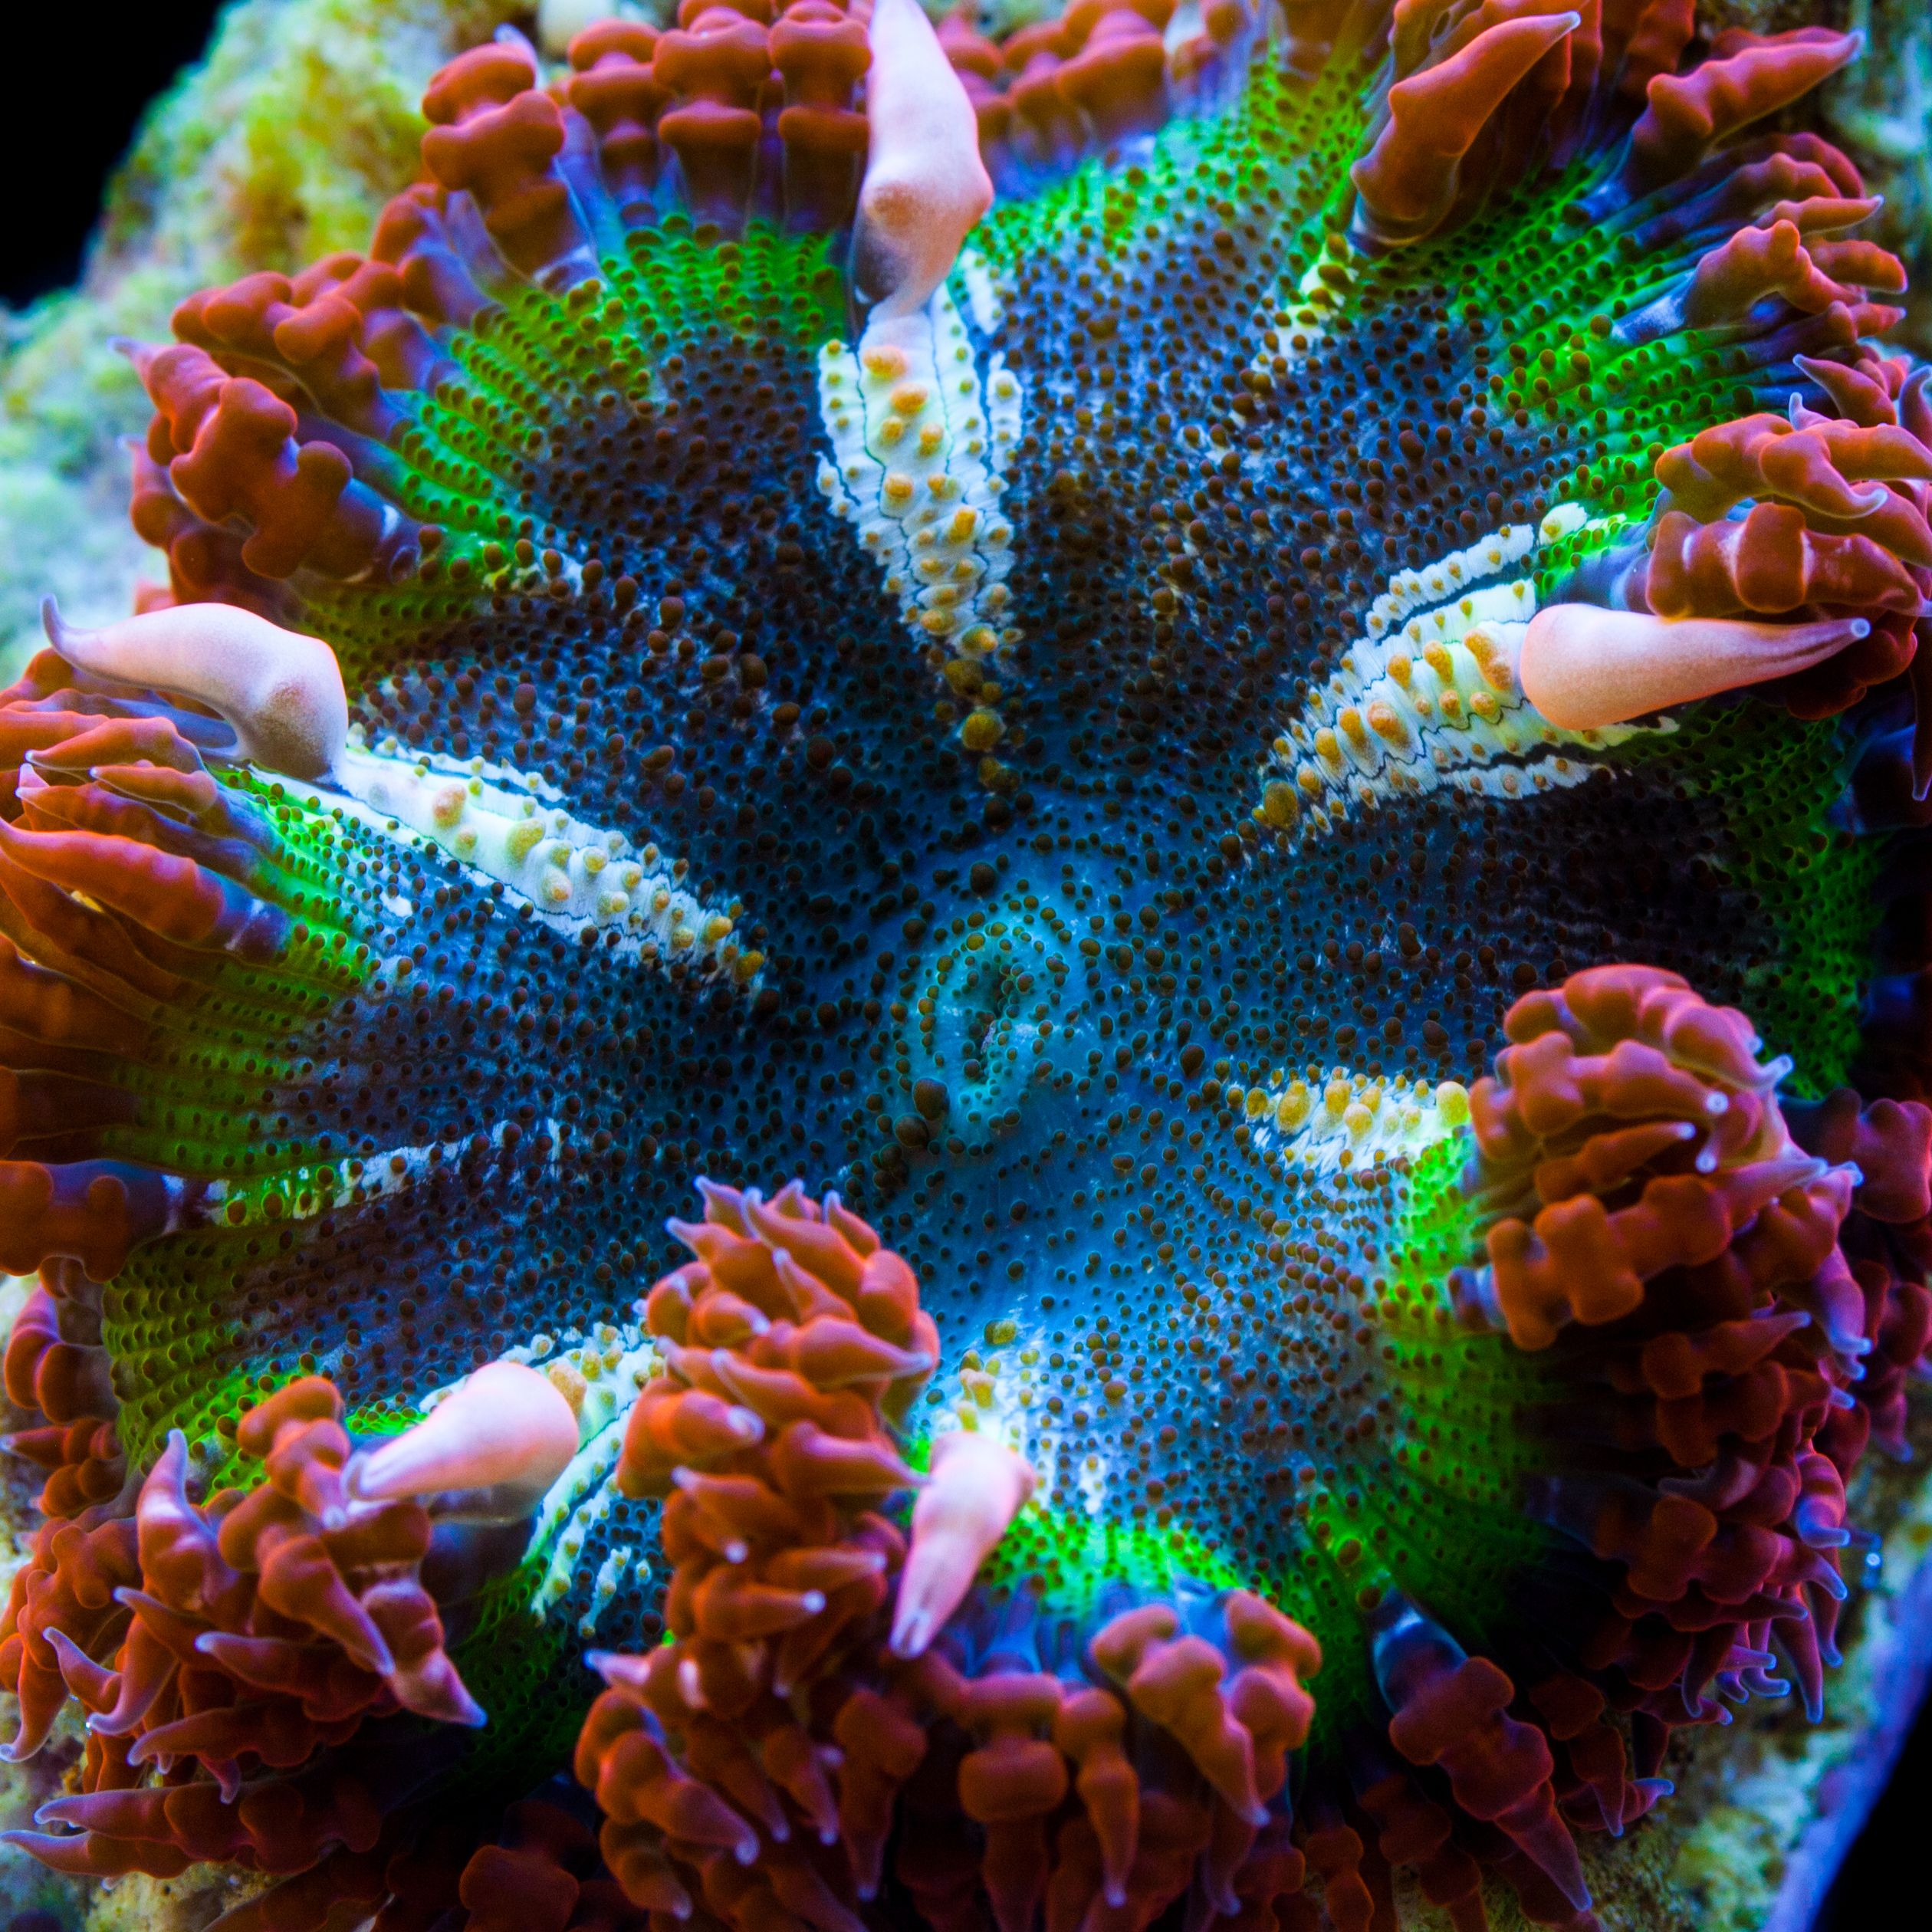 Pin By Timothy Prack On What I Hope To Get For Our Reef Someday Any Of These Will Do Sea And Ocean Saltwater Tank Anemone